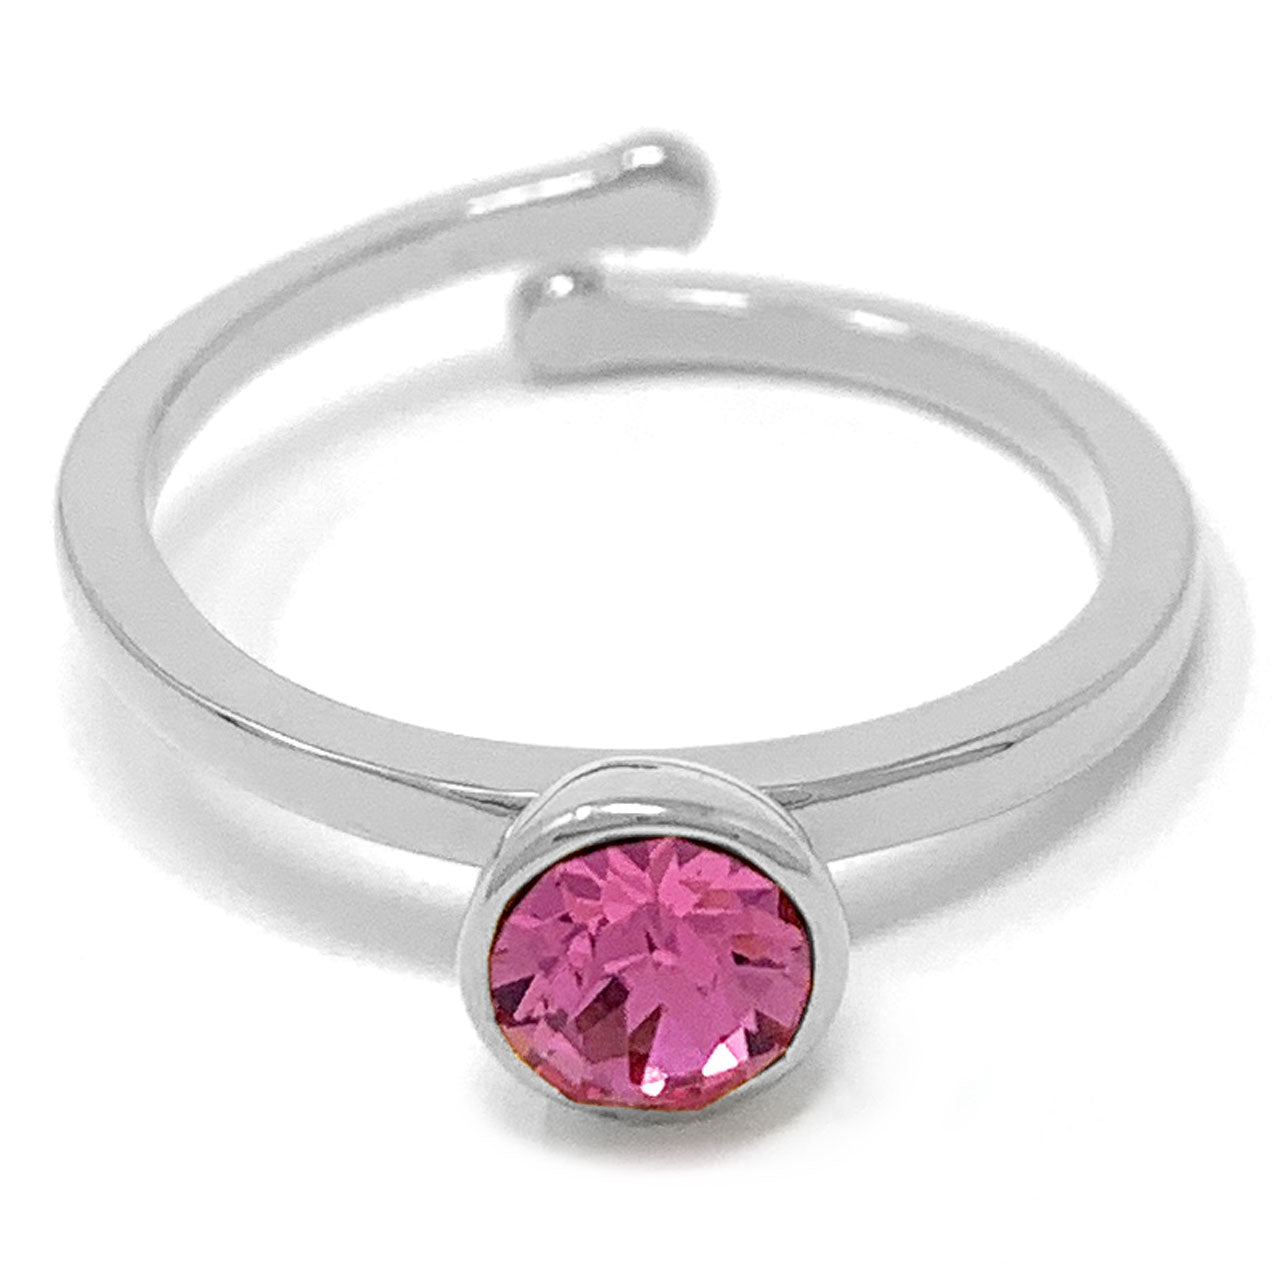 Harley Adjustable Ring with Pink Rose Round Crystals from Swarovski Silver Toned Rhodium Plated - Ed Heart